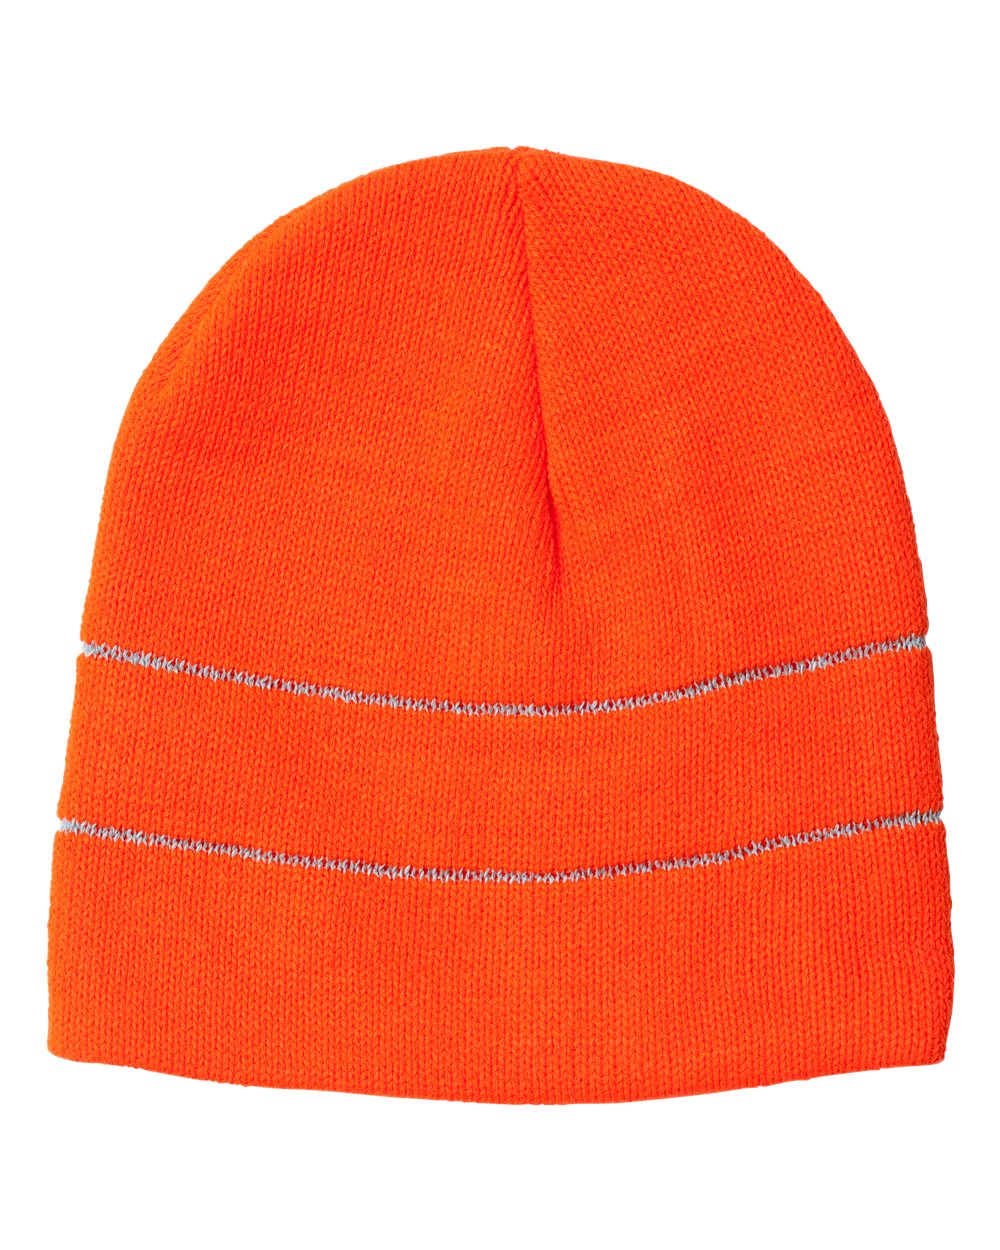 click to view Safety Orange Reflective